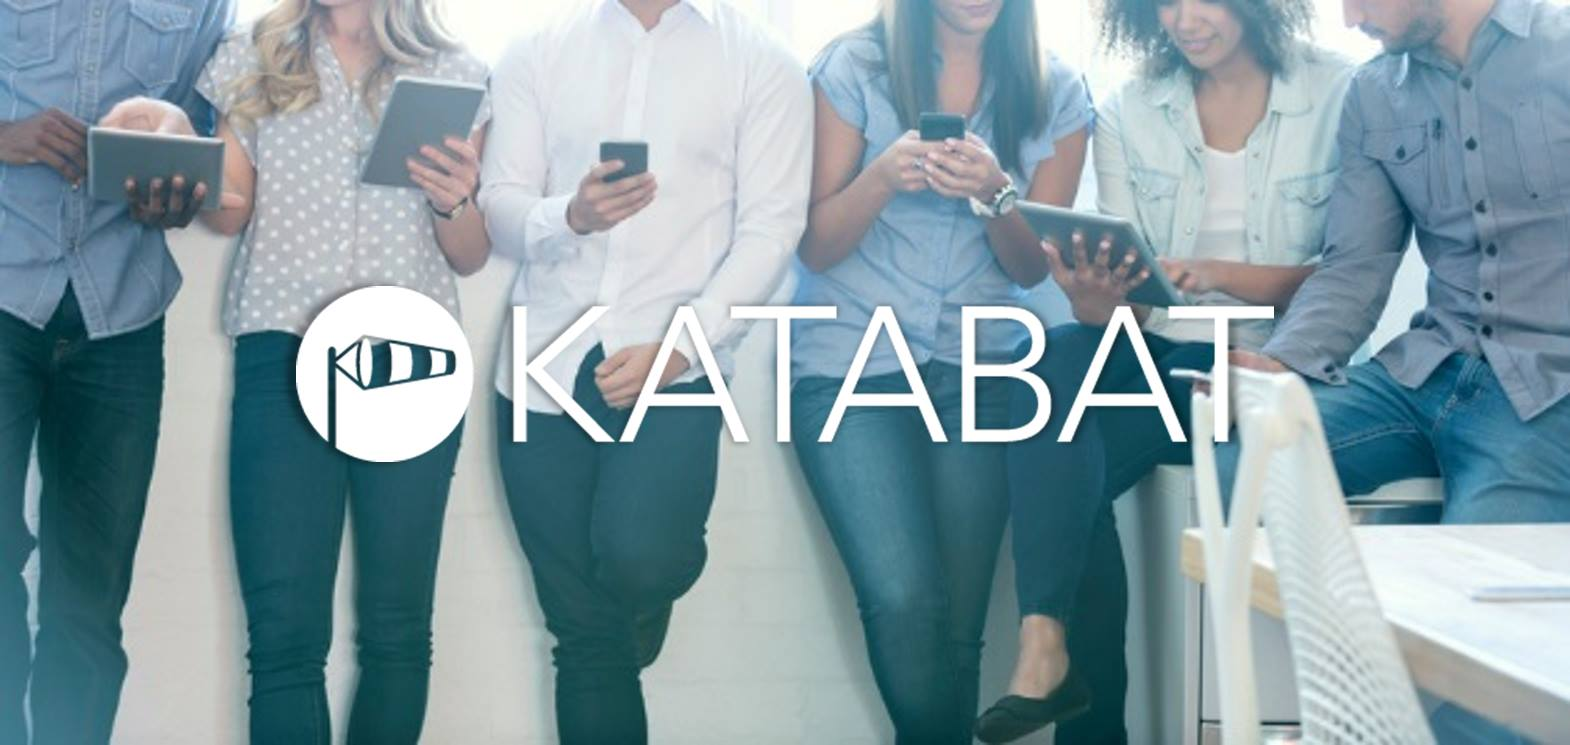 Katabat Logo and Devices